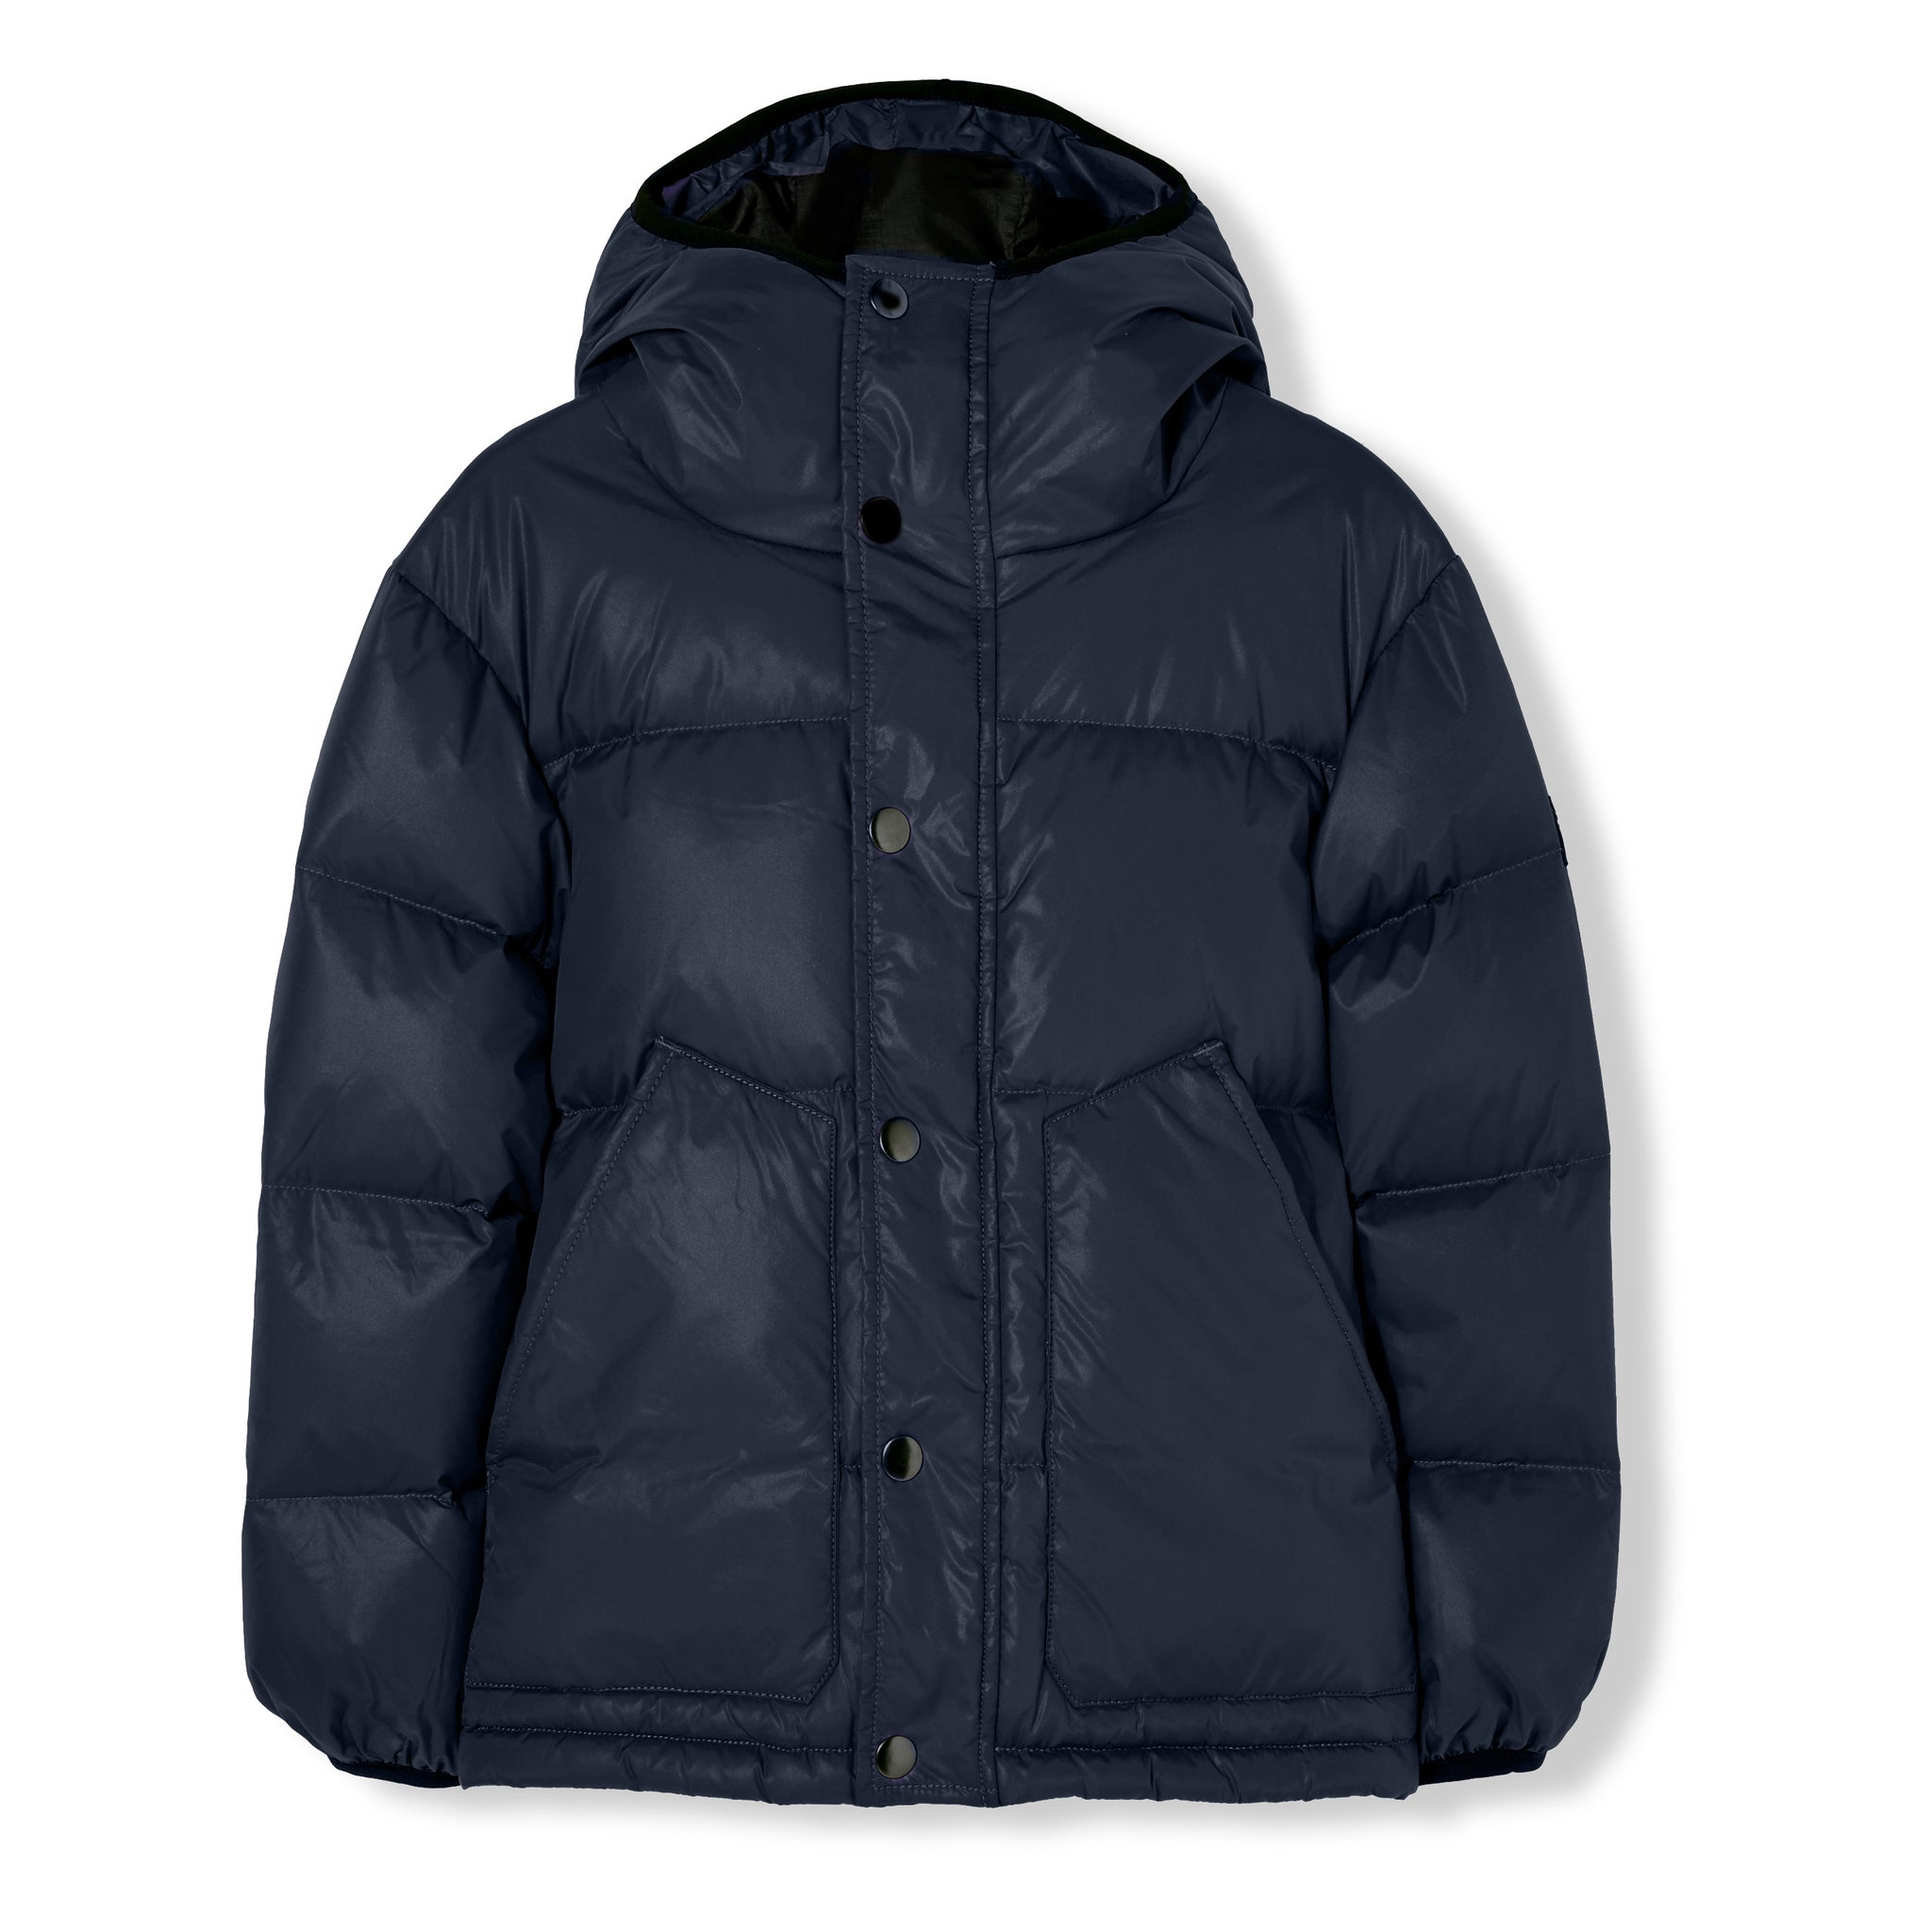 SNOWFLOW Sailor Blue 2 - Sraight Down Jacket